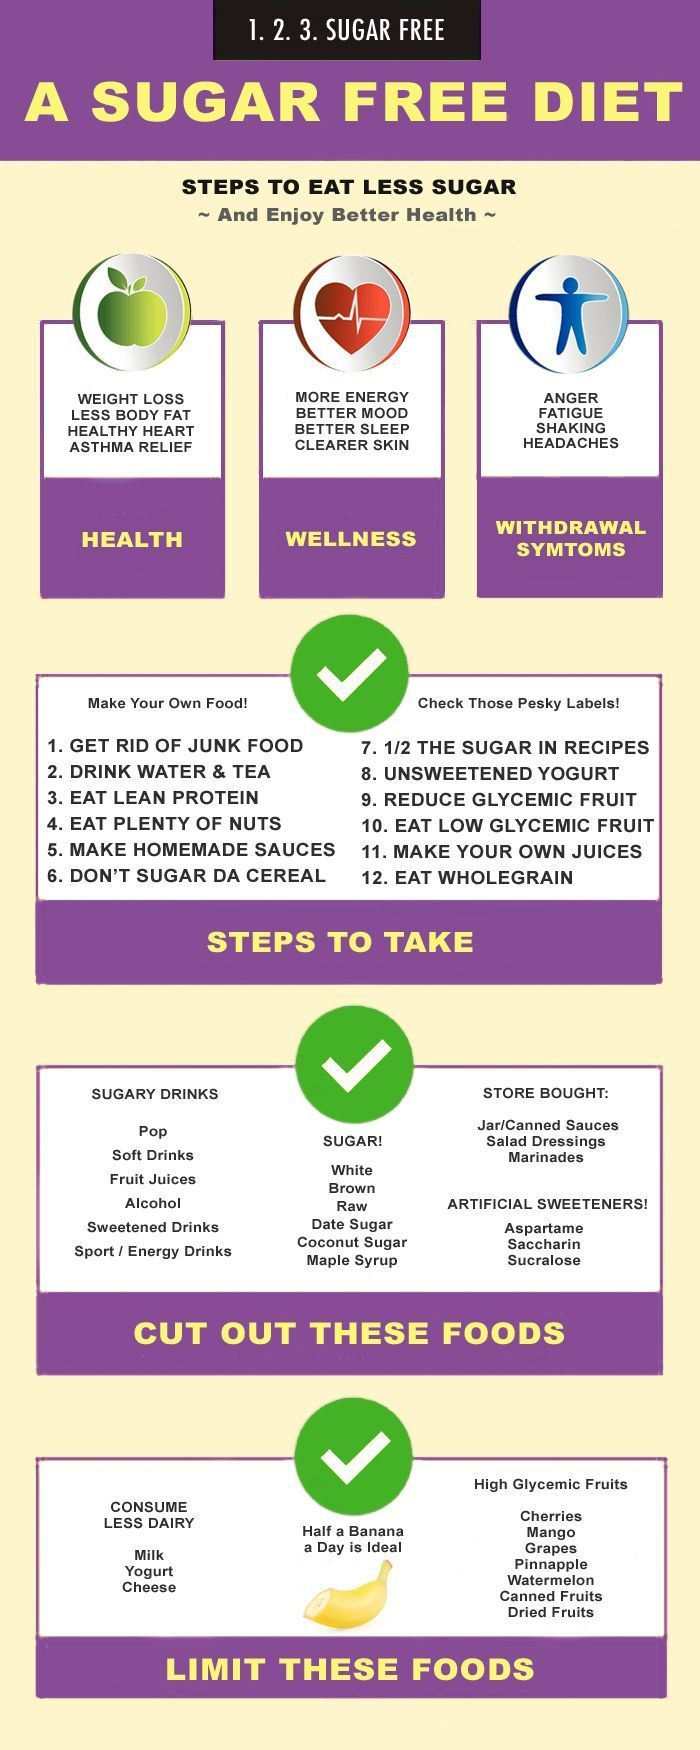 Cutting sugar out of your diet is a good thing right? But if you are struggling to eat less sugar this handy dandy infographic gives you a few easy tips to get started. Coming up with a sugar detox plan is also challenging on your own but if you've ever wanted to try a 3-day cleanse, 7 day cleanse or even a 21 day cleanse to get healthier here is a good way to start. #detoxinfographic